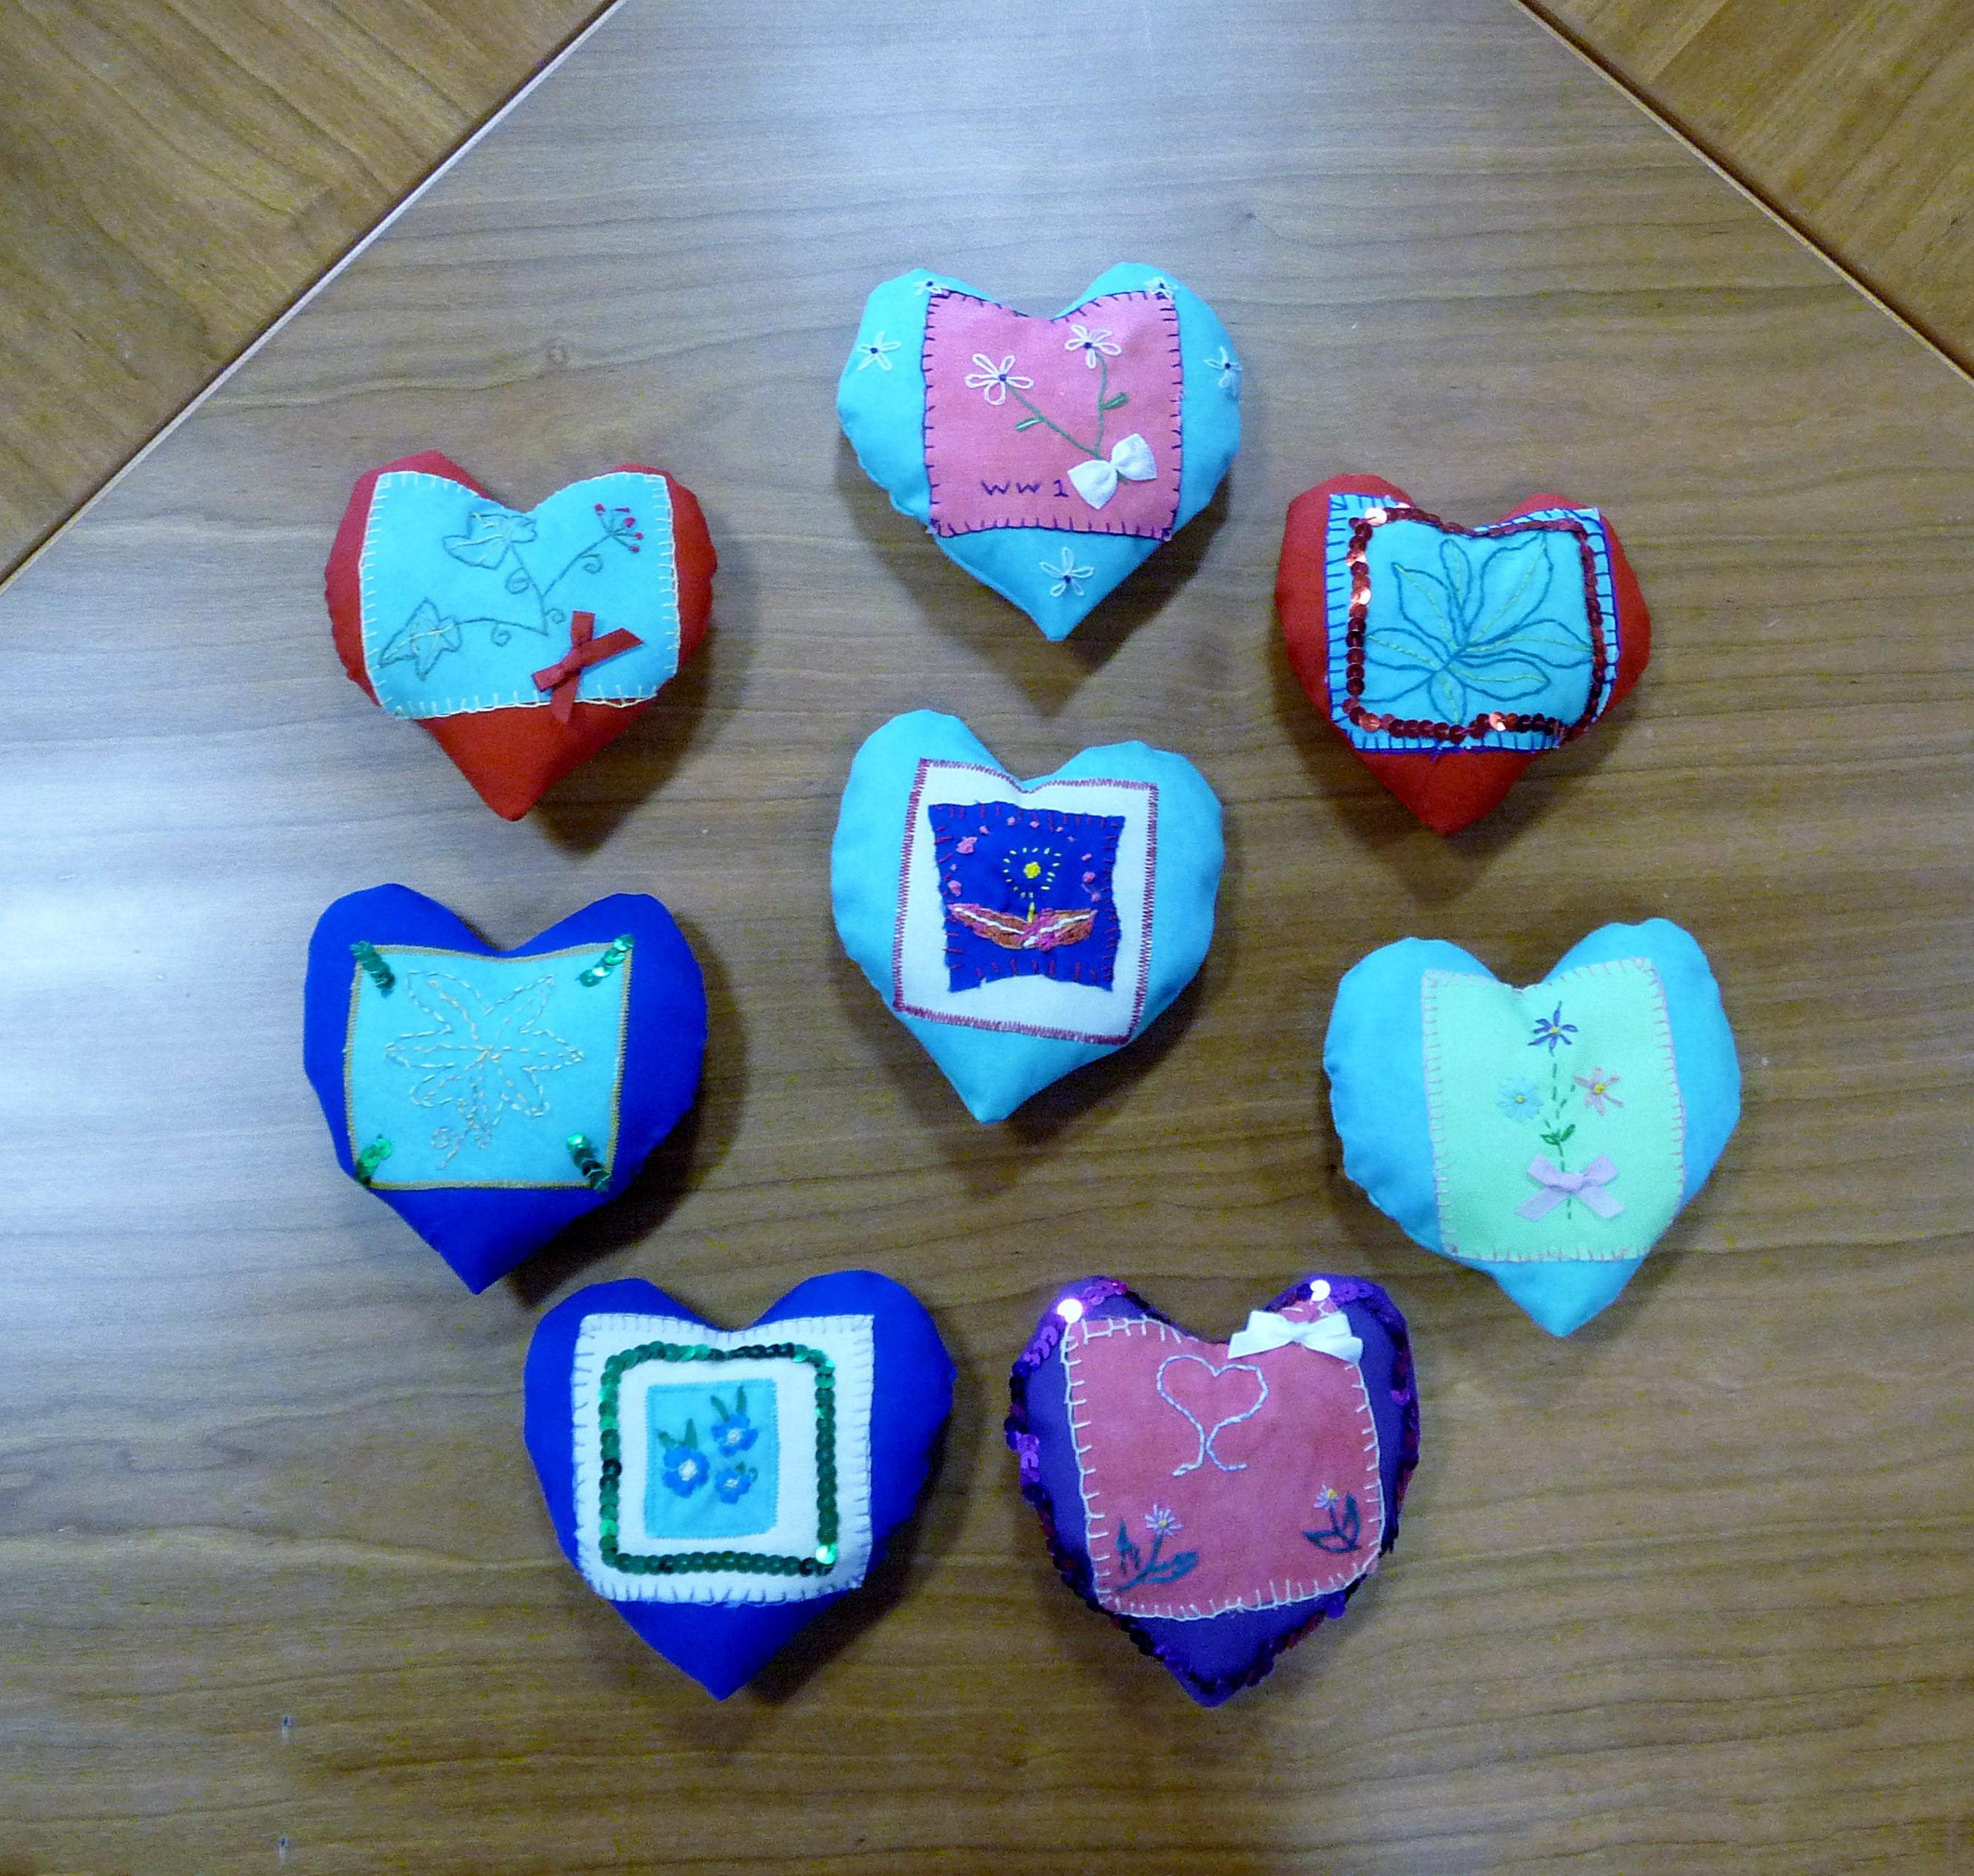 """Completed """"Sweetheart Pincushions"""" made by Merseyside YE for Up for Crafts to commemorate WW1"""